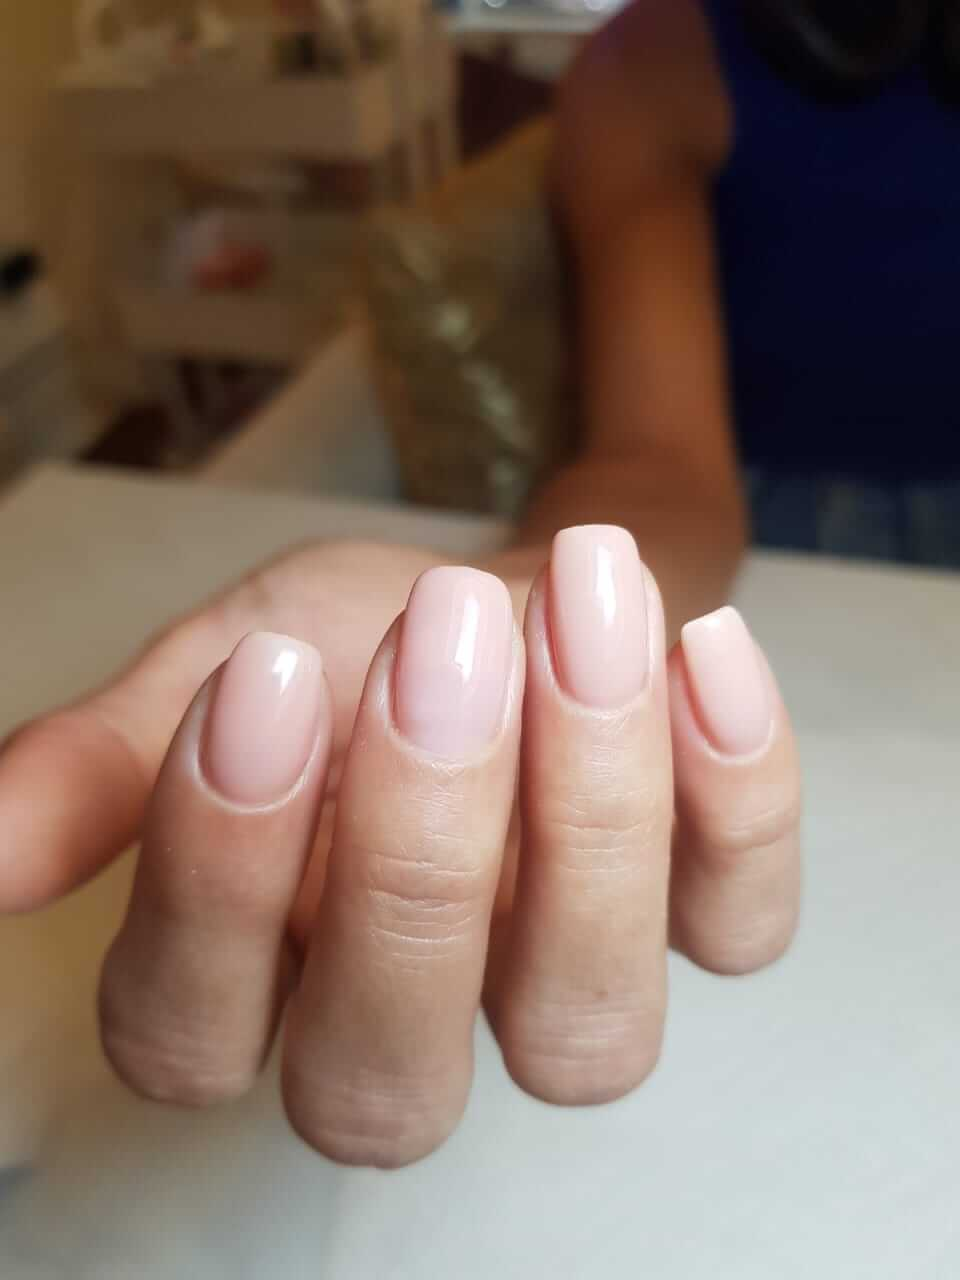 Gelish nude colours